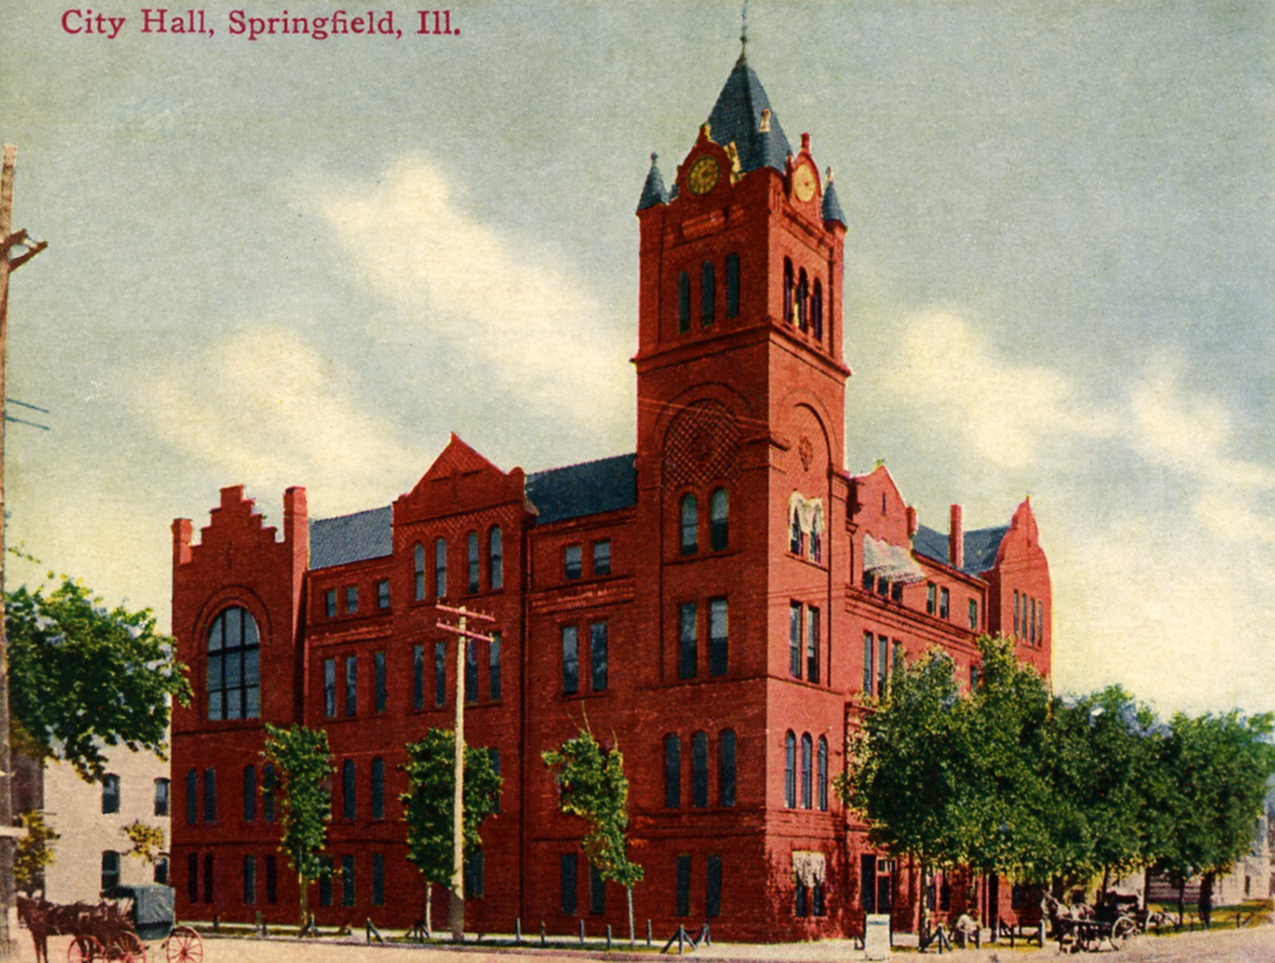 City Hall in Springfield, IL 1894